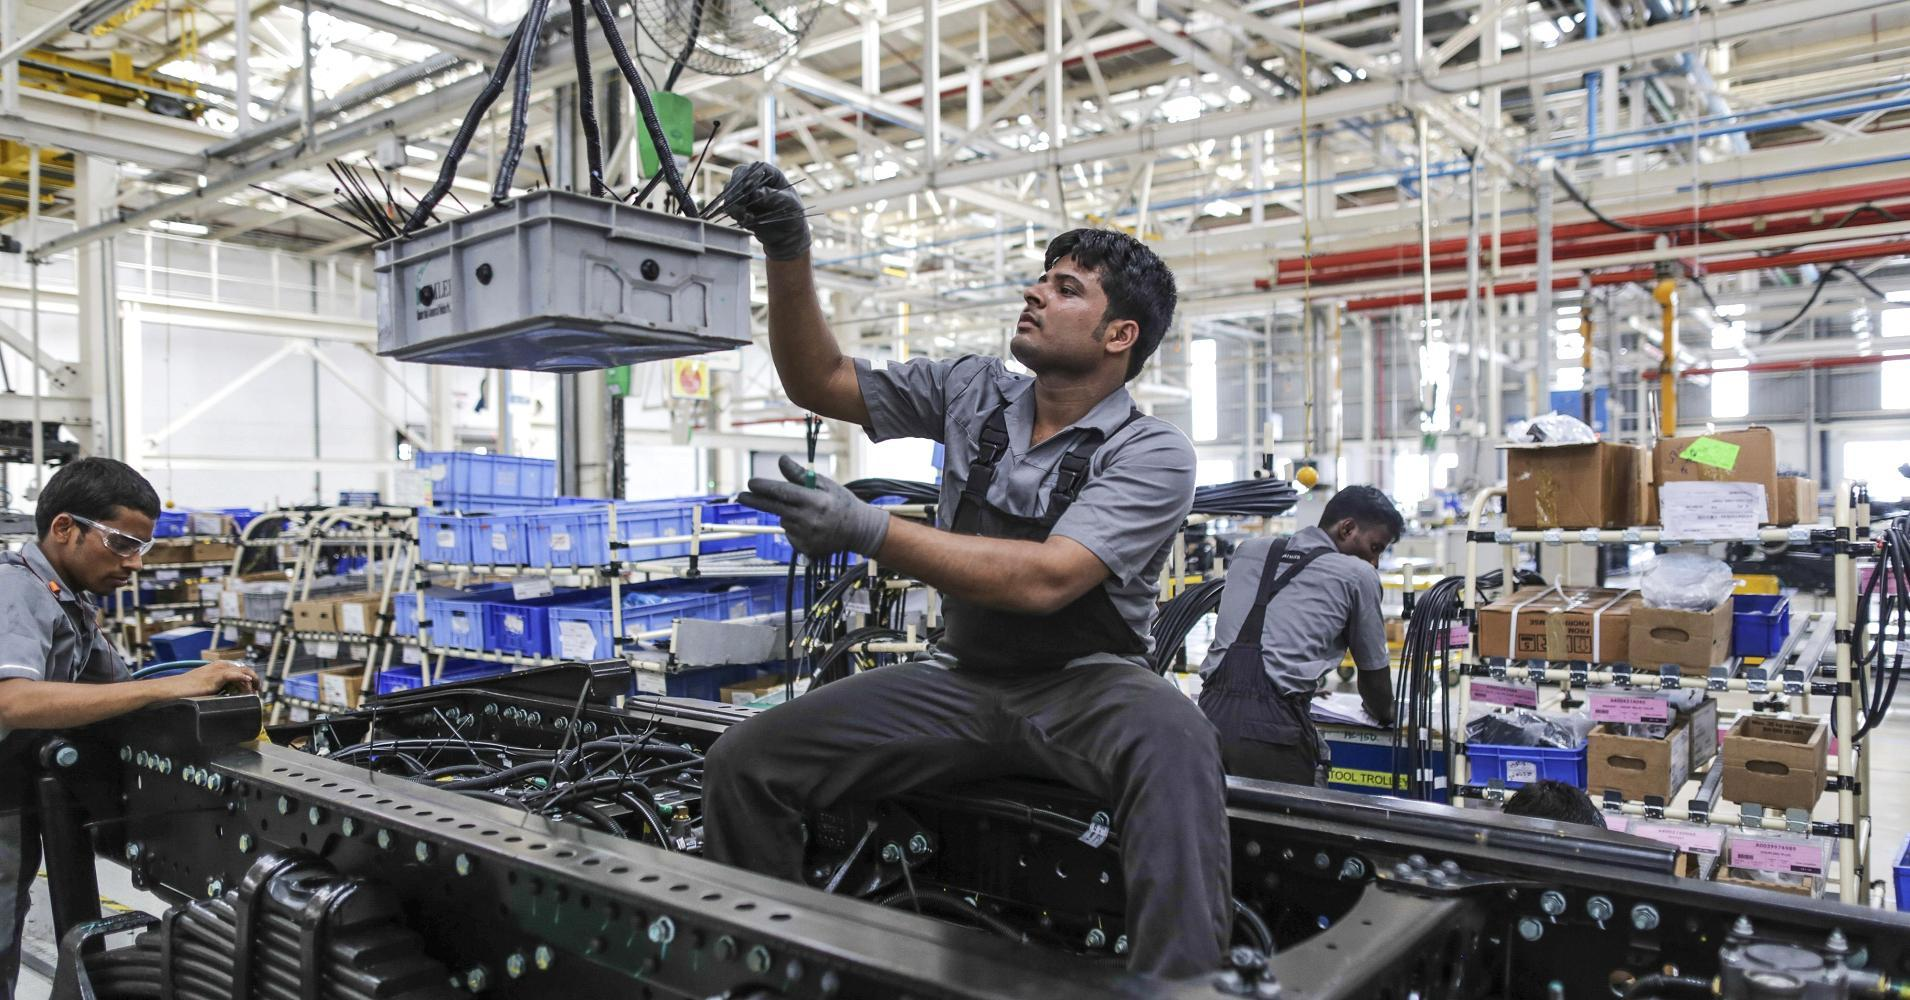 India's growth trumps China, but data questioned